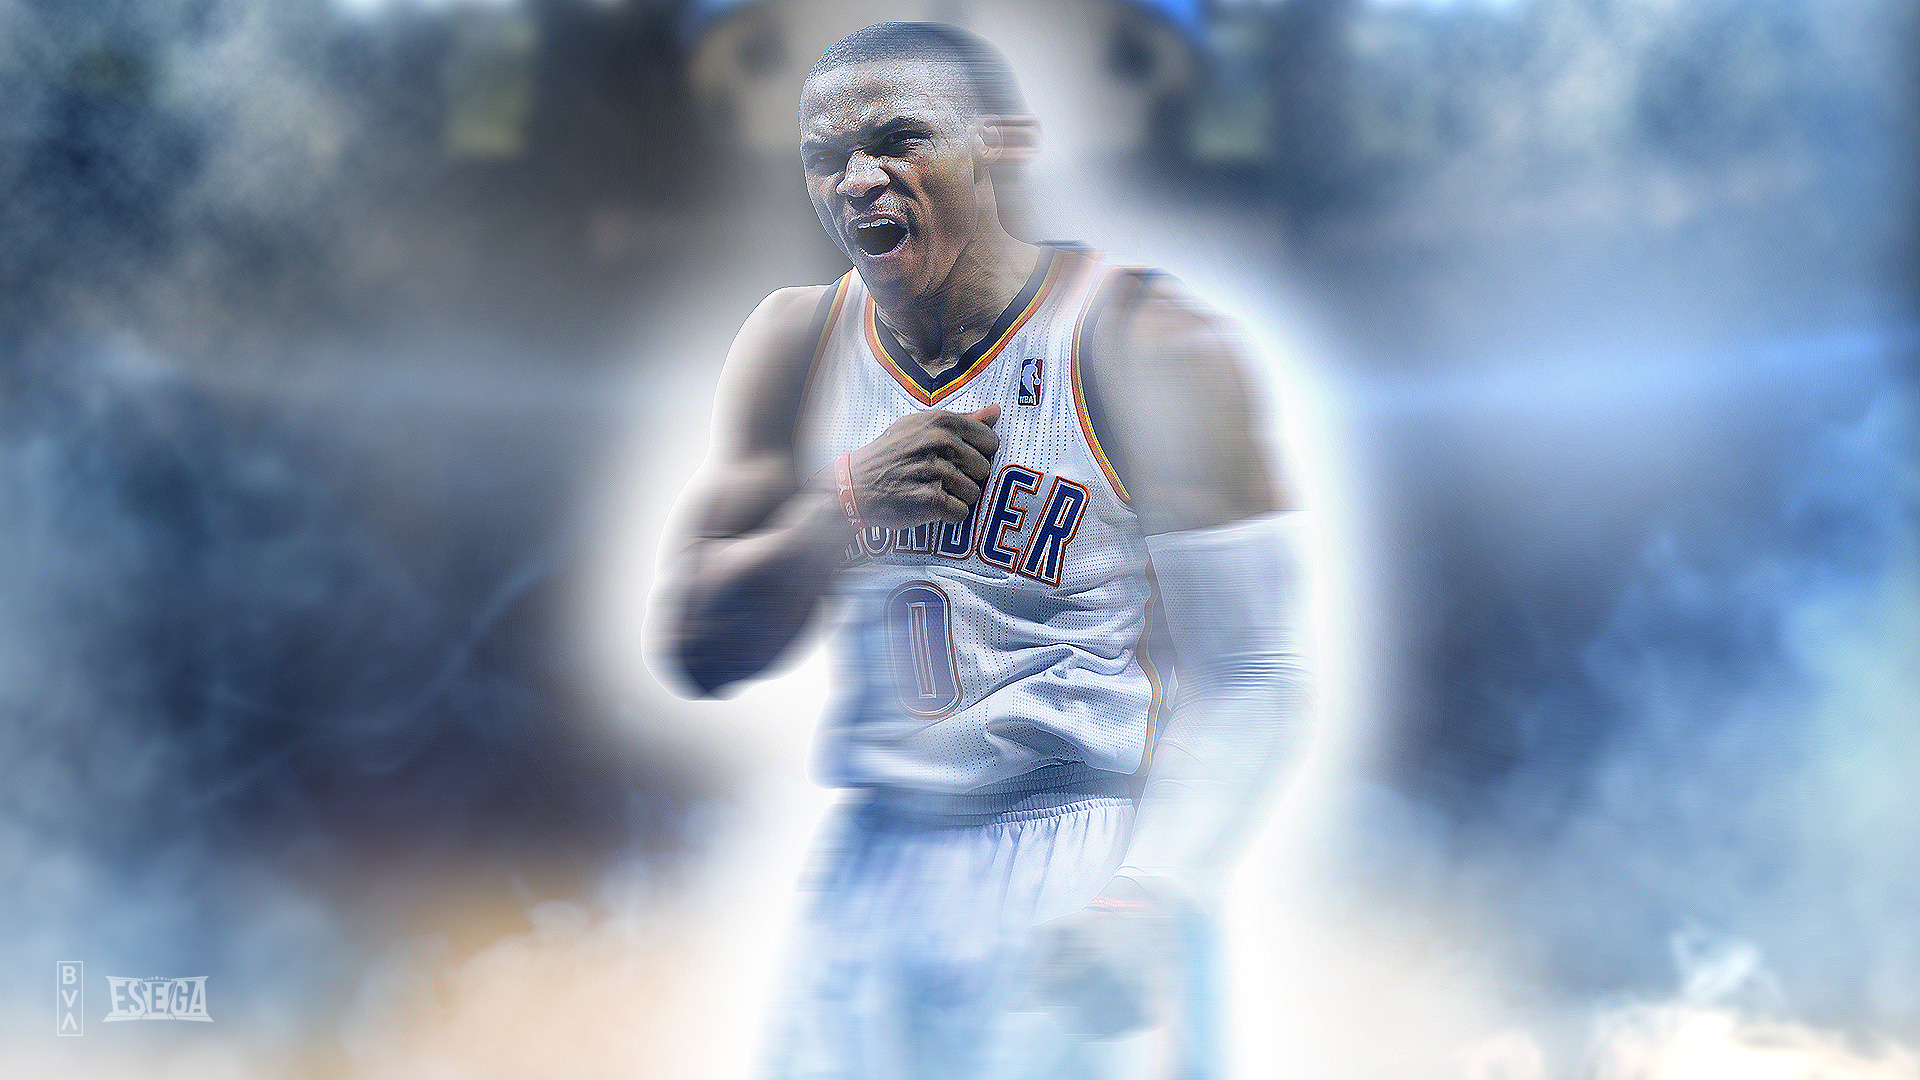 russell westbrook stunningly left - photo #34